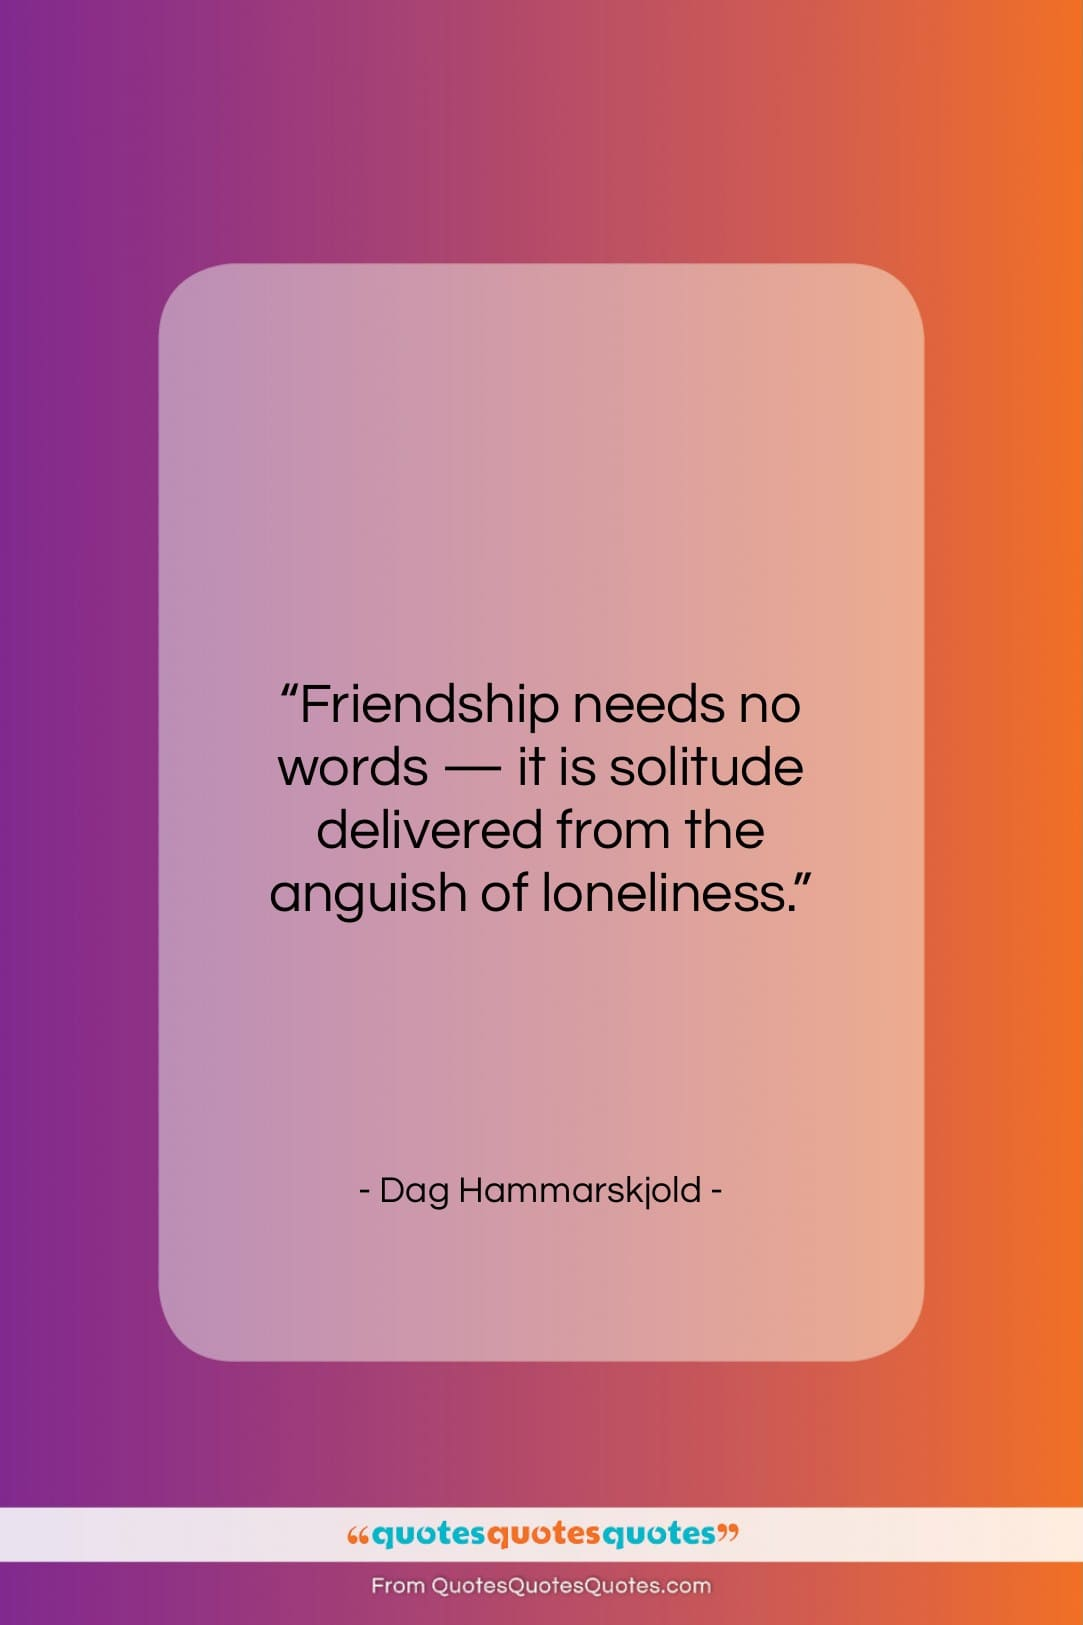 """Dag Hammarskjold quote: """"Friendship needs no words — it is…""""- at QuotesQuotesQuotes.com"""